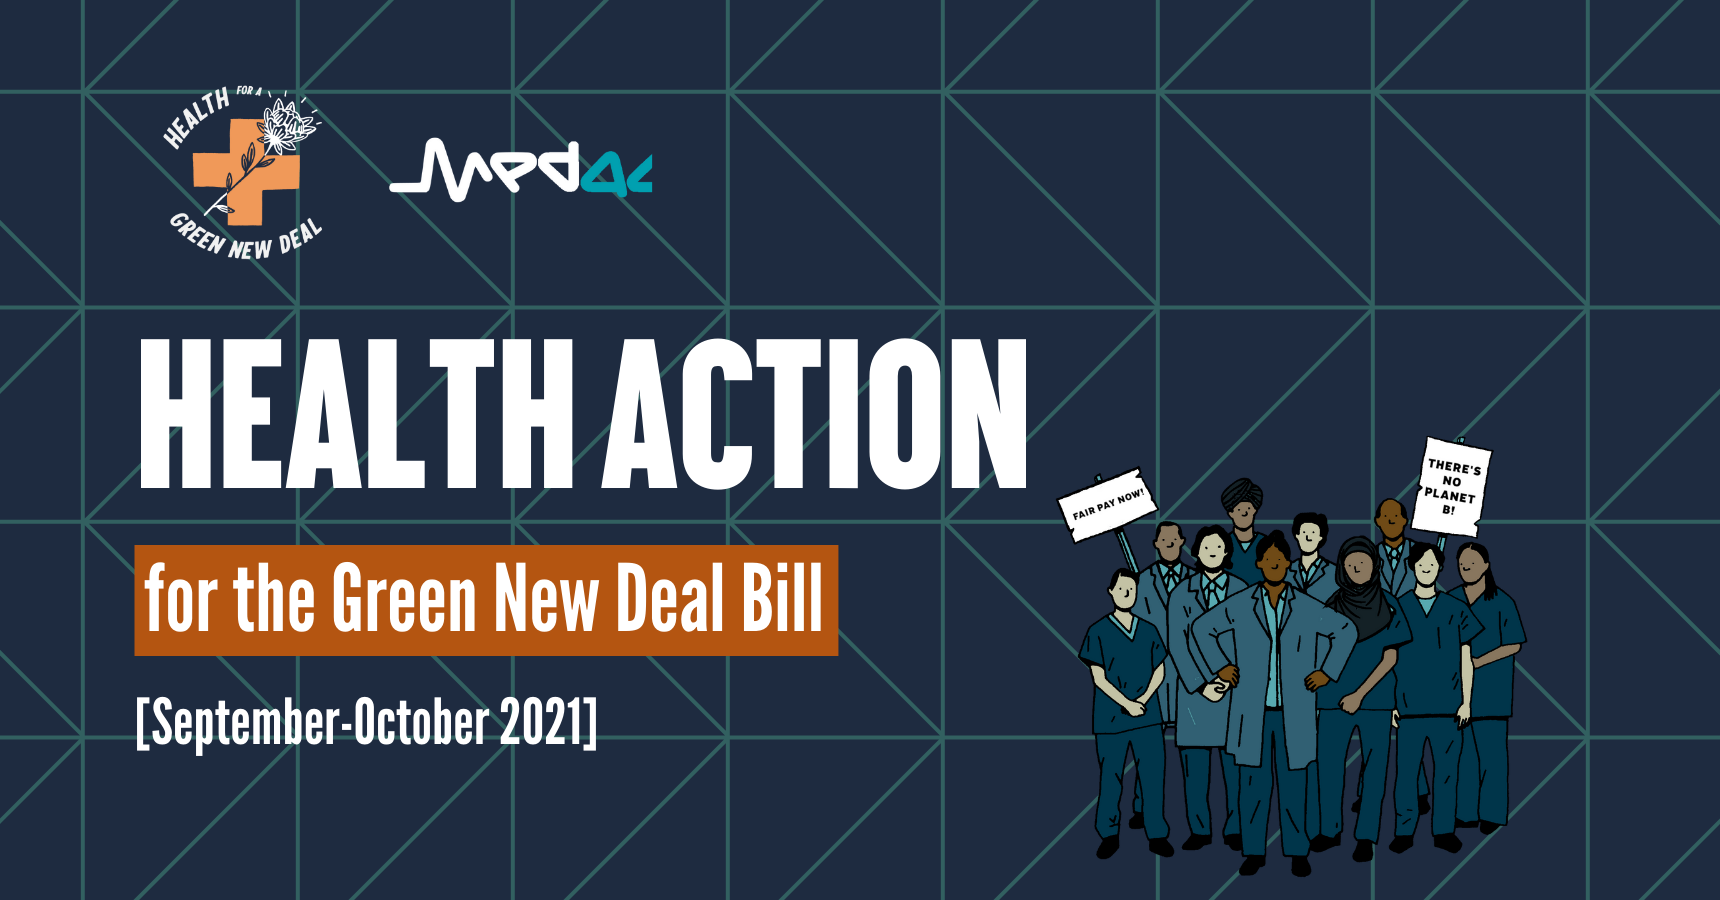 Health Action for the Green New Deal Bill, September-October 2021